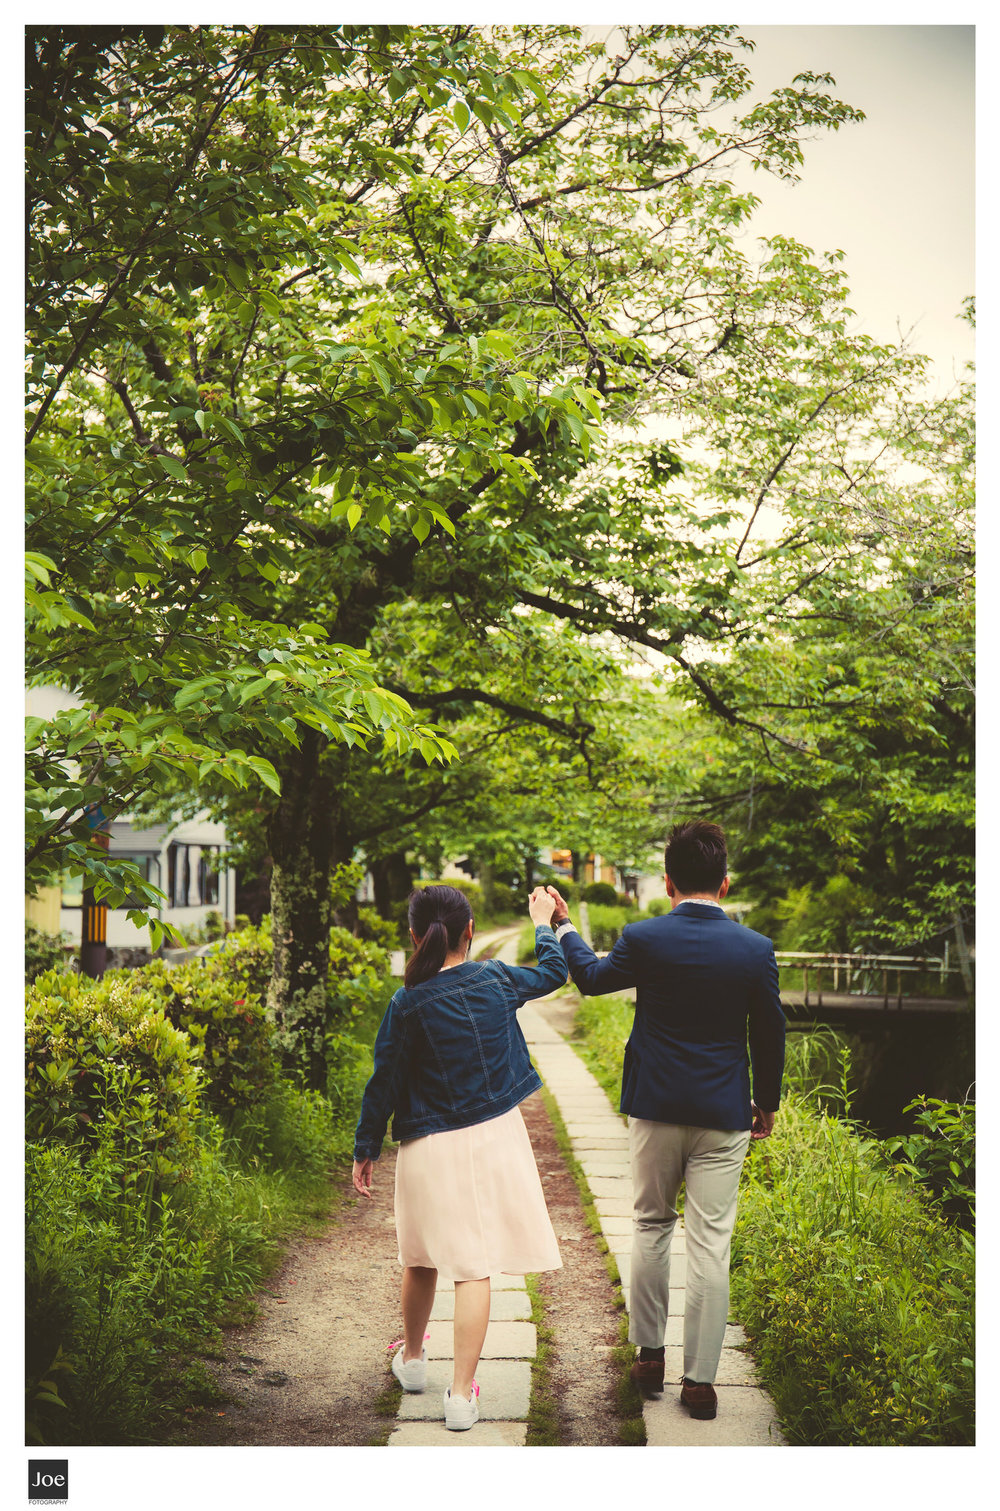 44-the-philosophers-walk-kyoto-pre-wedding-angela-danny-joe-fotography.jpg